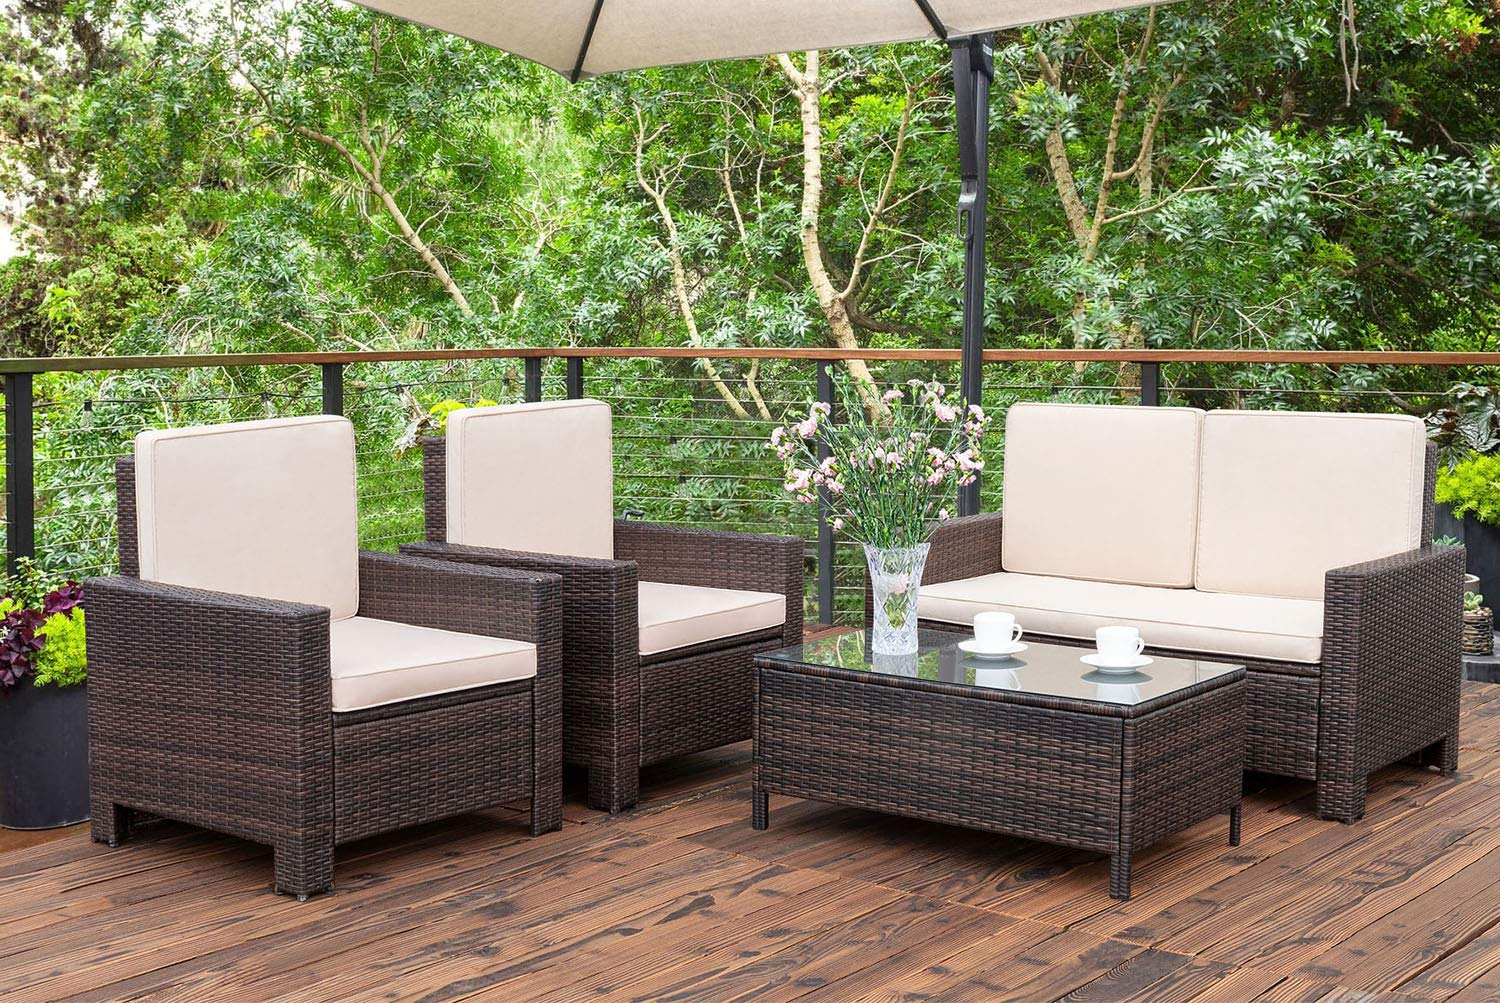 walnew 4 pieces outdoor patio furniture sets rattan chair on Backyard Outdoor Furniture id=19216